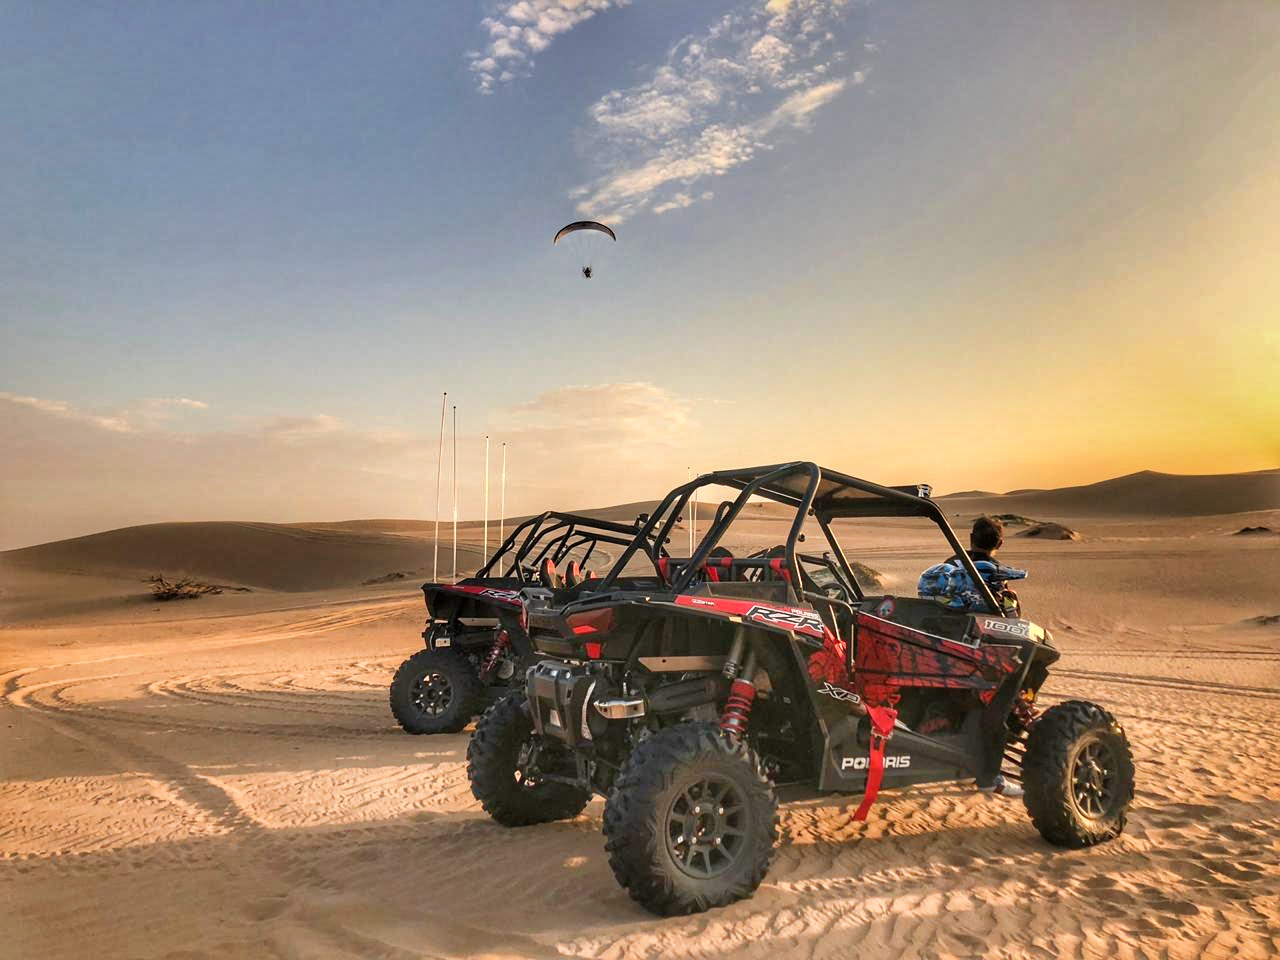 Polaris 1000RZR XP 2018 Dune Buggy Tour - 1 hour